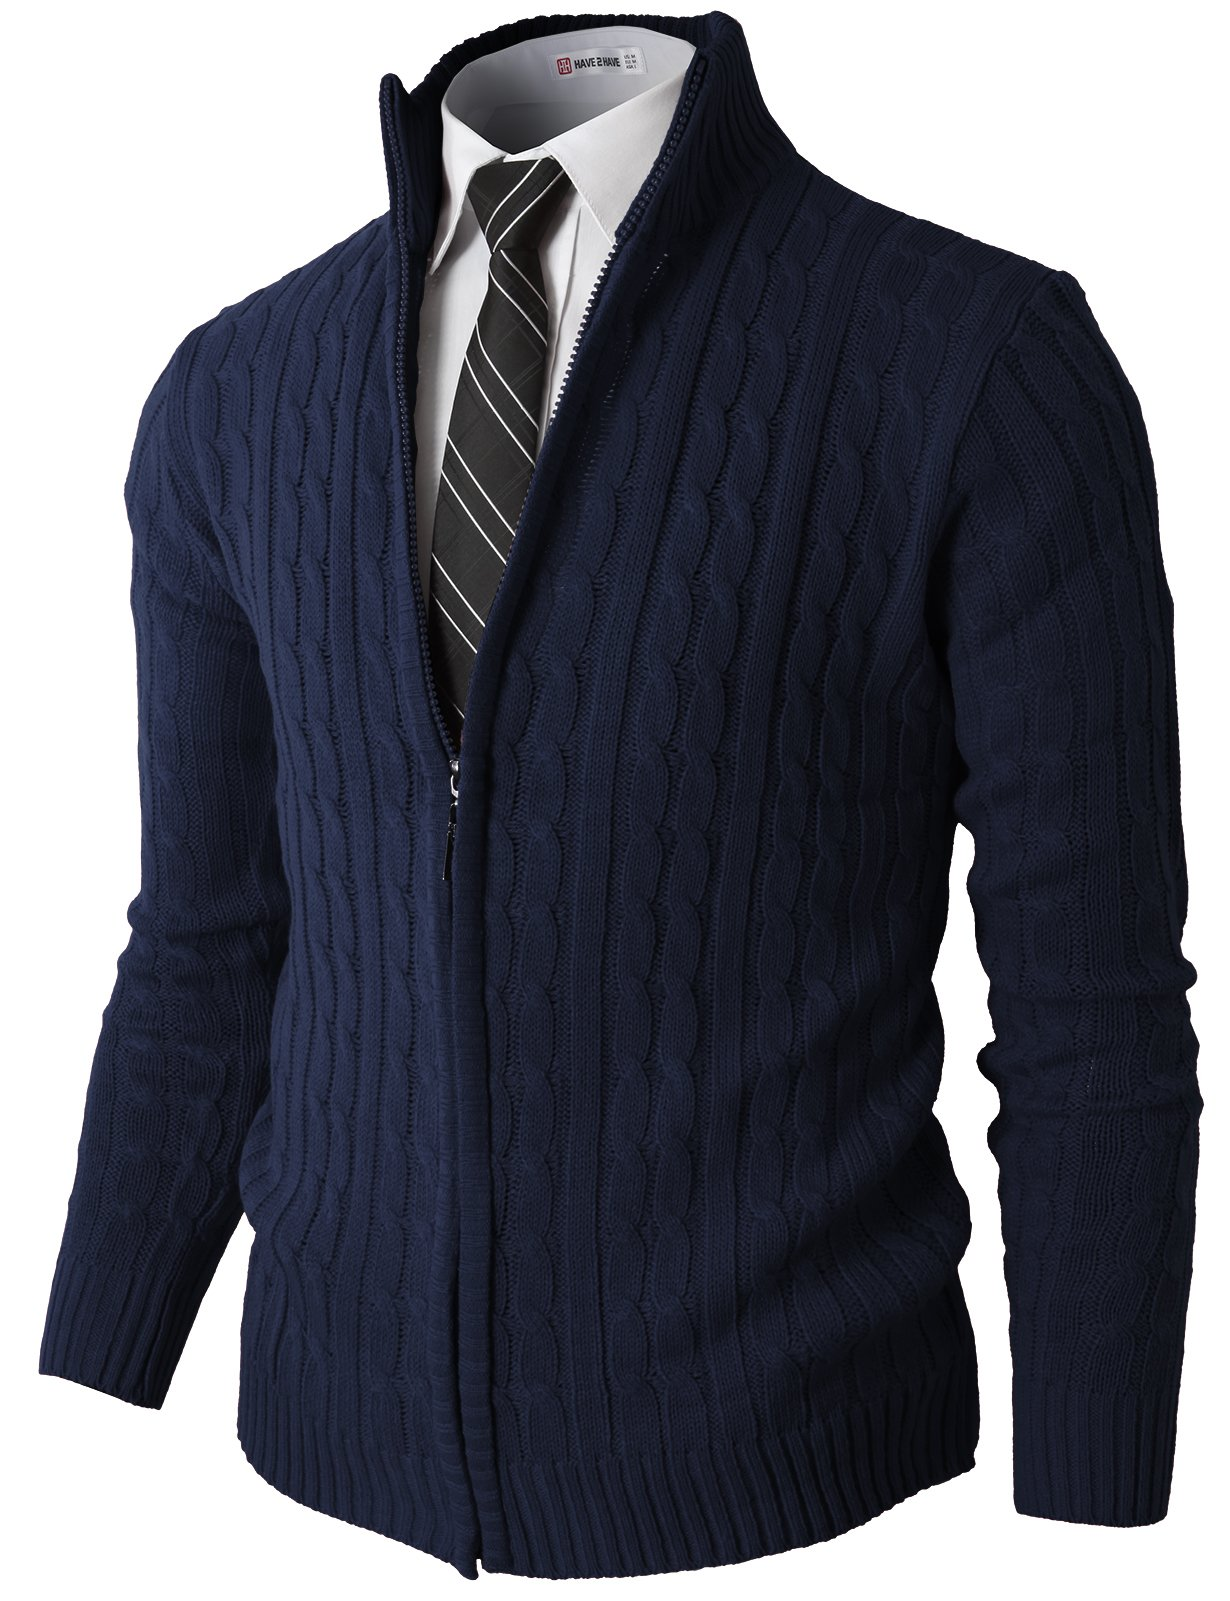 H2h Mens Casual Slim Fit Cardigan Long Sleeve Cable